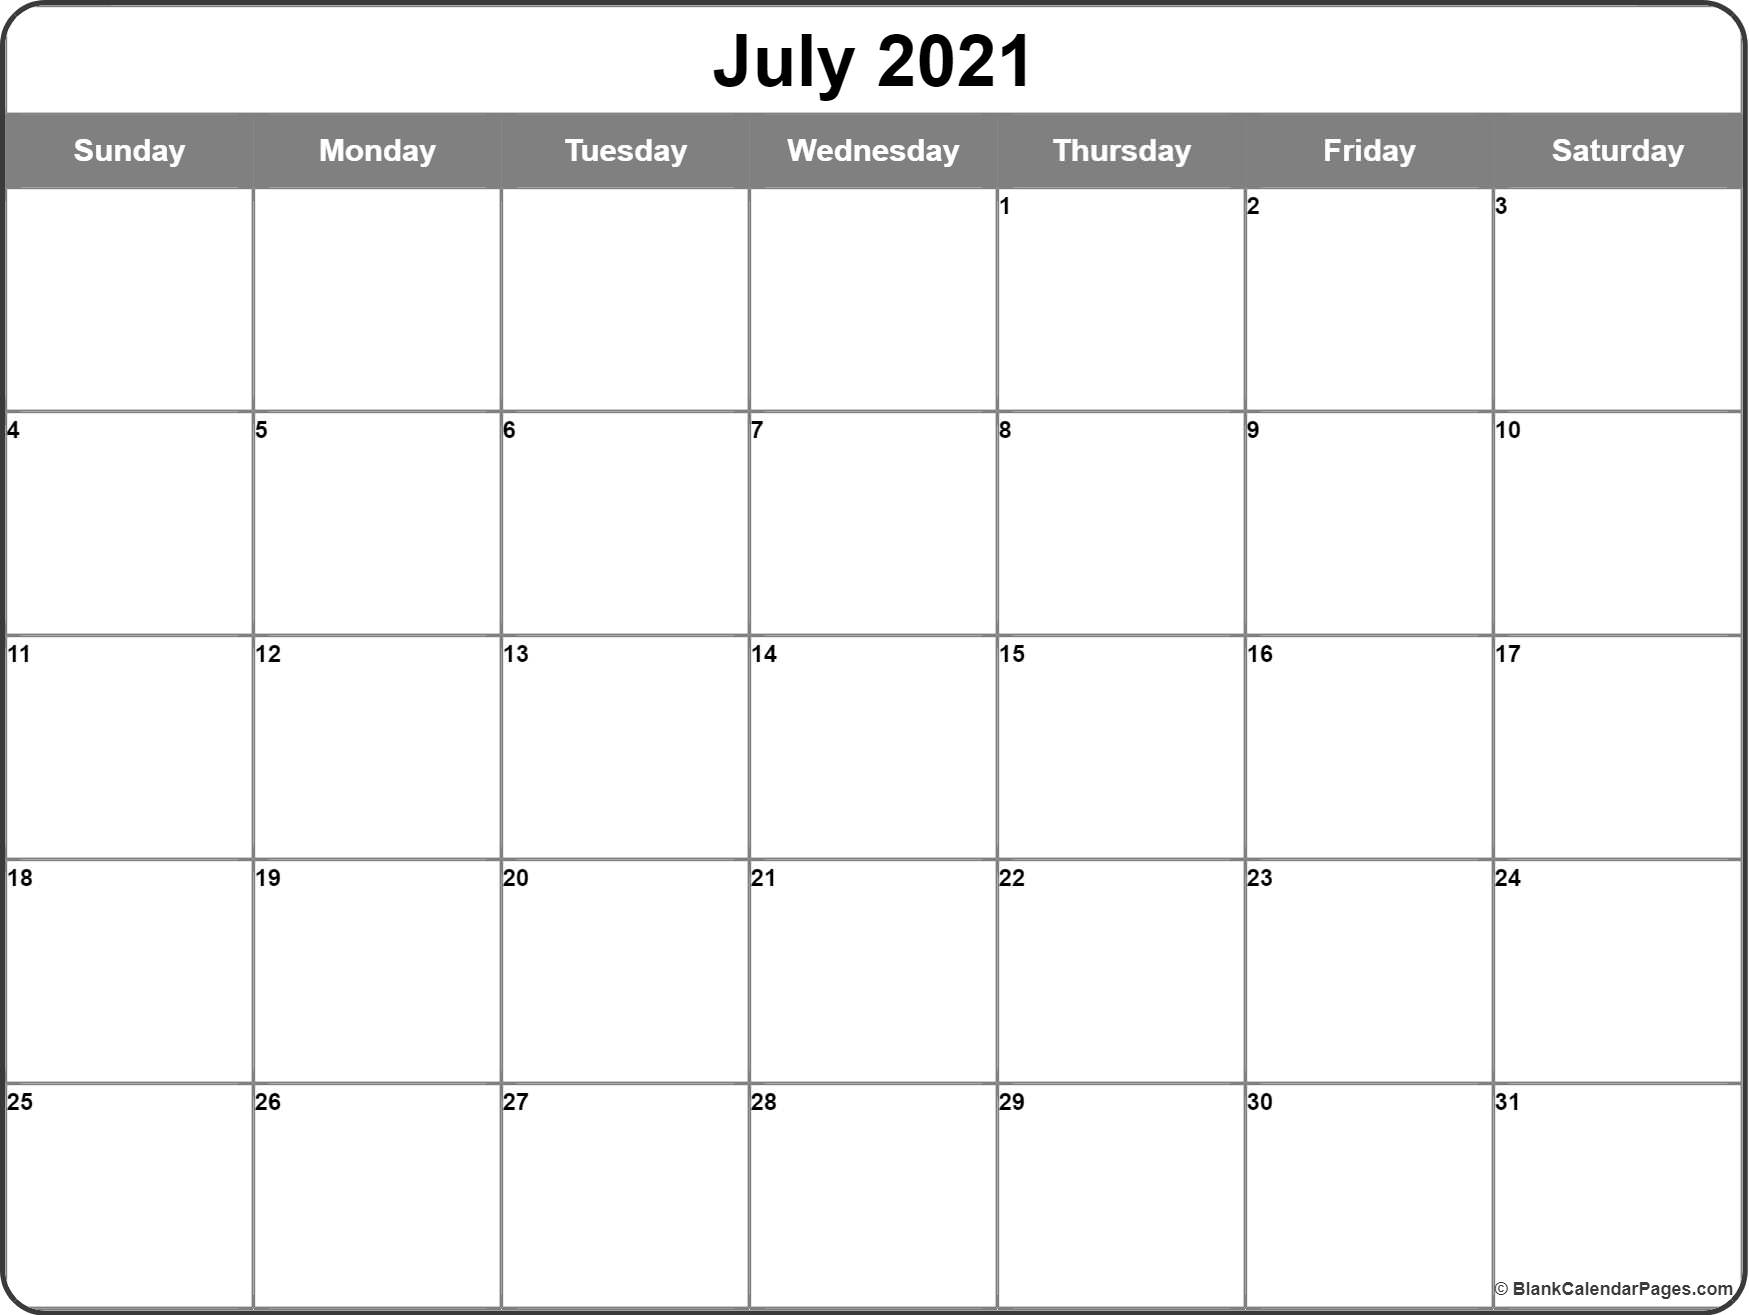 July 2021 Calendar | Free Printable Monthly Calendars for 2021 Fill-In Calendar